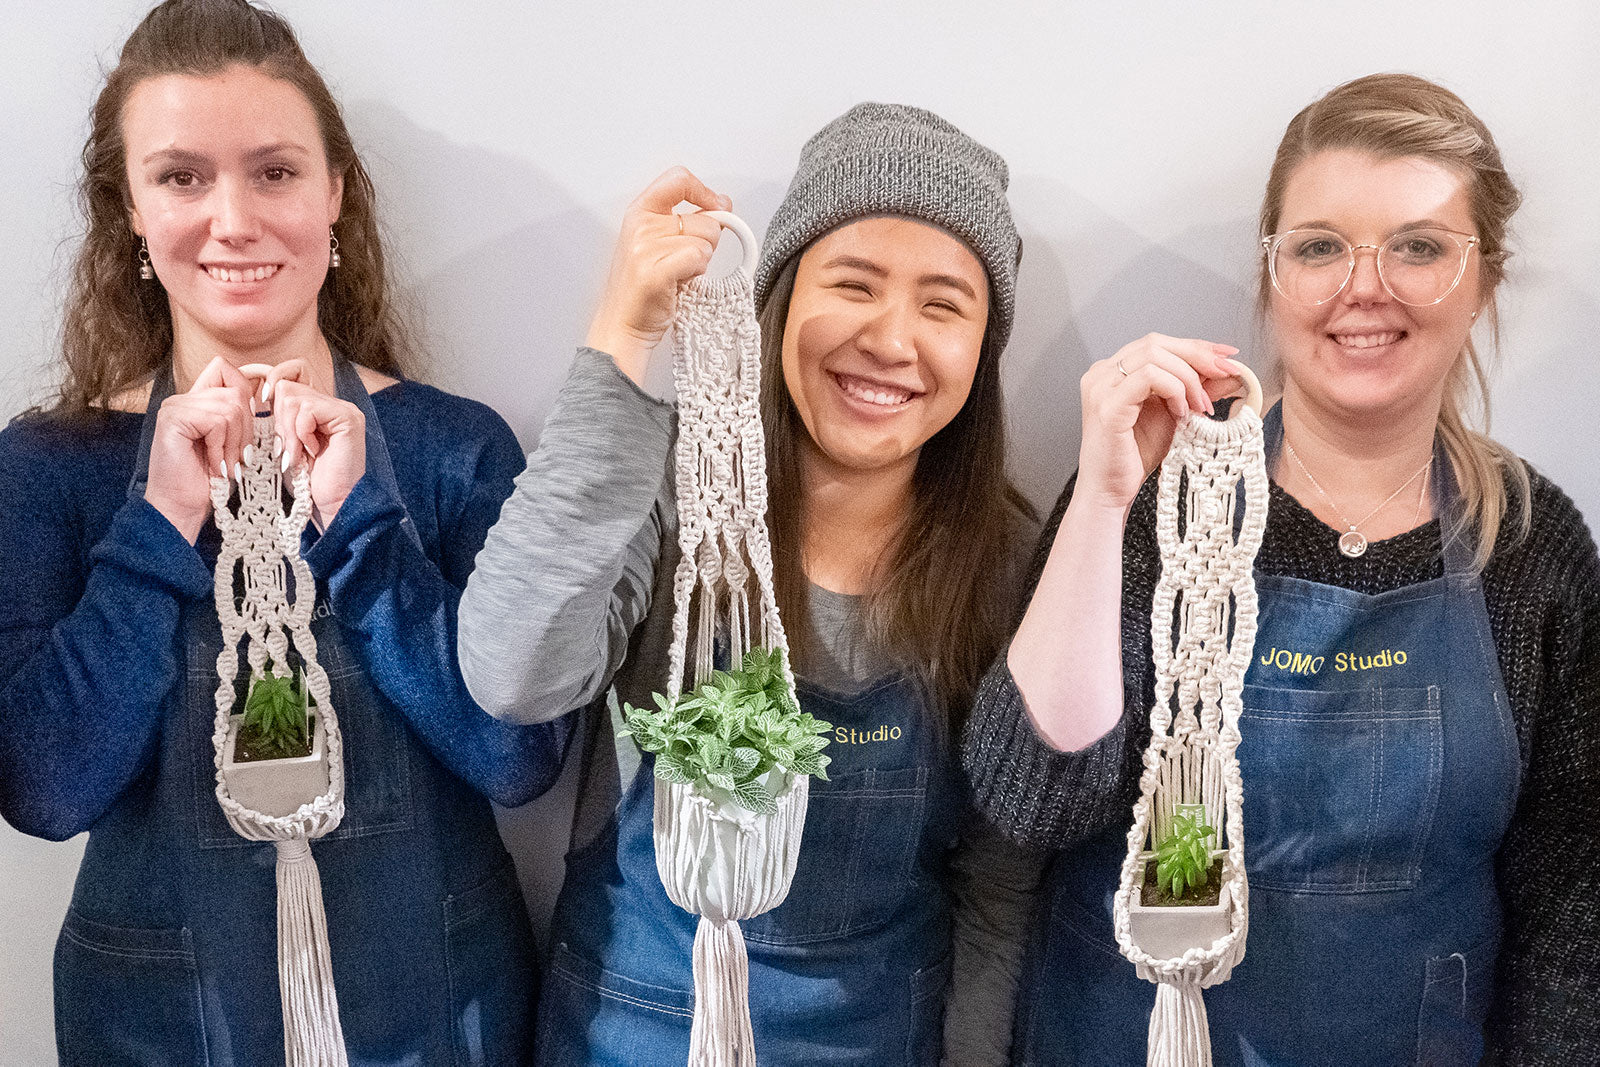 Toronto Macrame Workshop - Plant Hanger Knotting - JOMO Studio